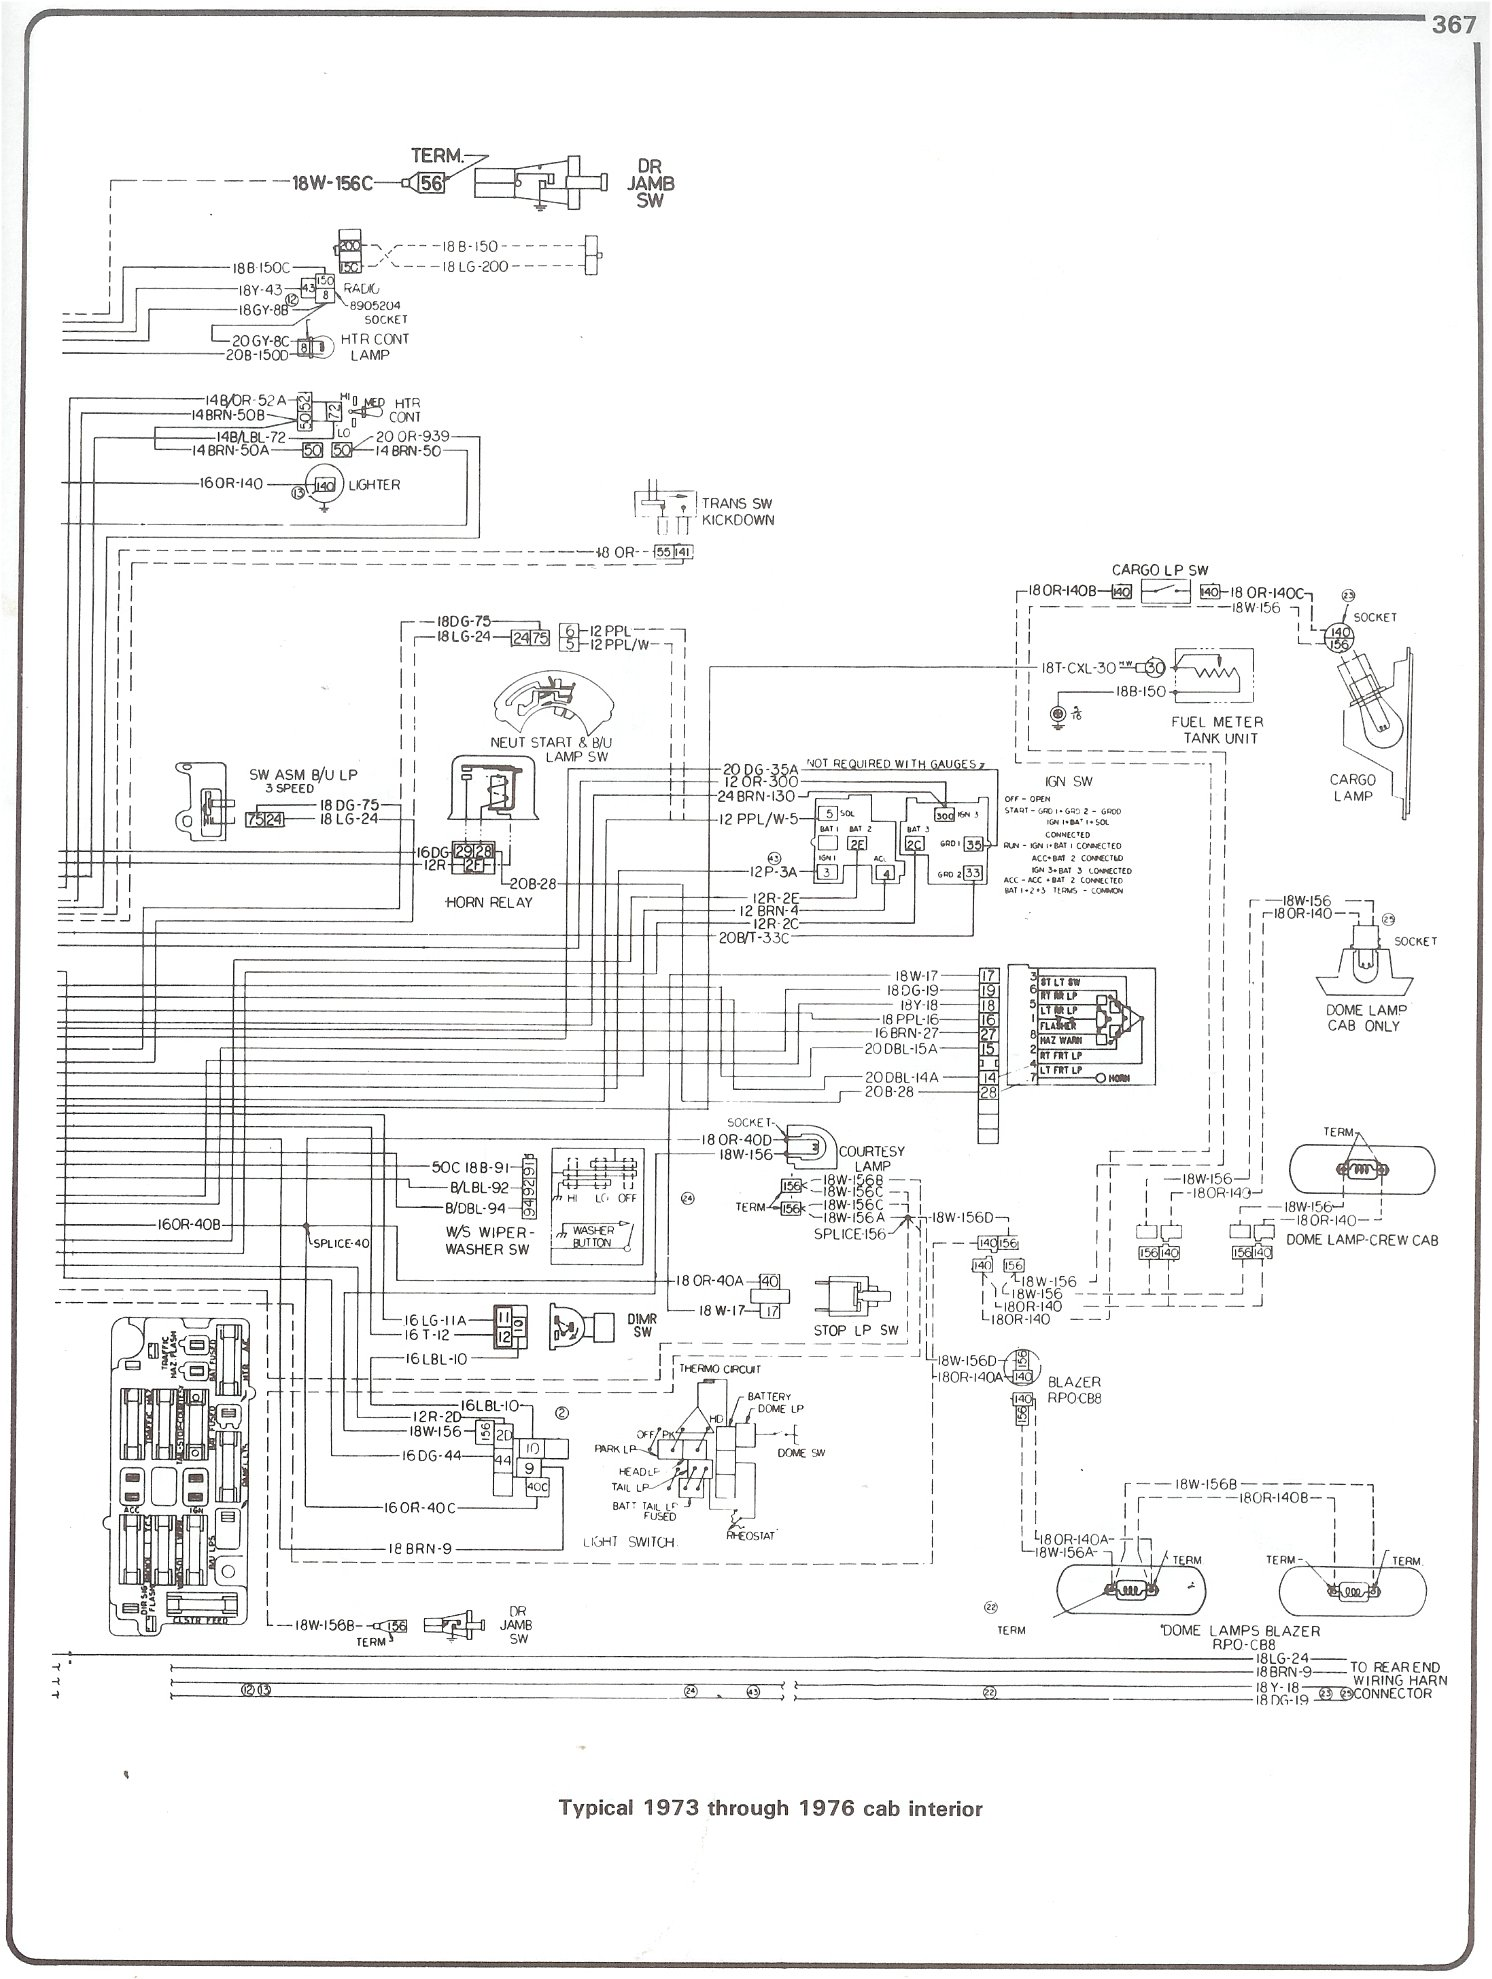 83 C10 Radio Wiring 1985 chevy c10 radio wiring diagram 1979 ...  C Radio Wiring Diagram on 85 c10 wheels, 85 c10 lights, 85 c10 frame, 85 c10 accessories, 85 c10 fuel tank, 85 c10 door, 85 c10 horn, 85 c10 parts, 85 c10 engine, 85 c10 suspension,